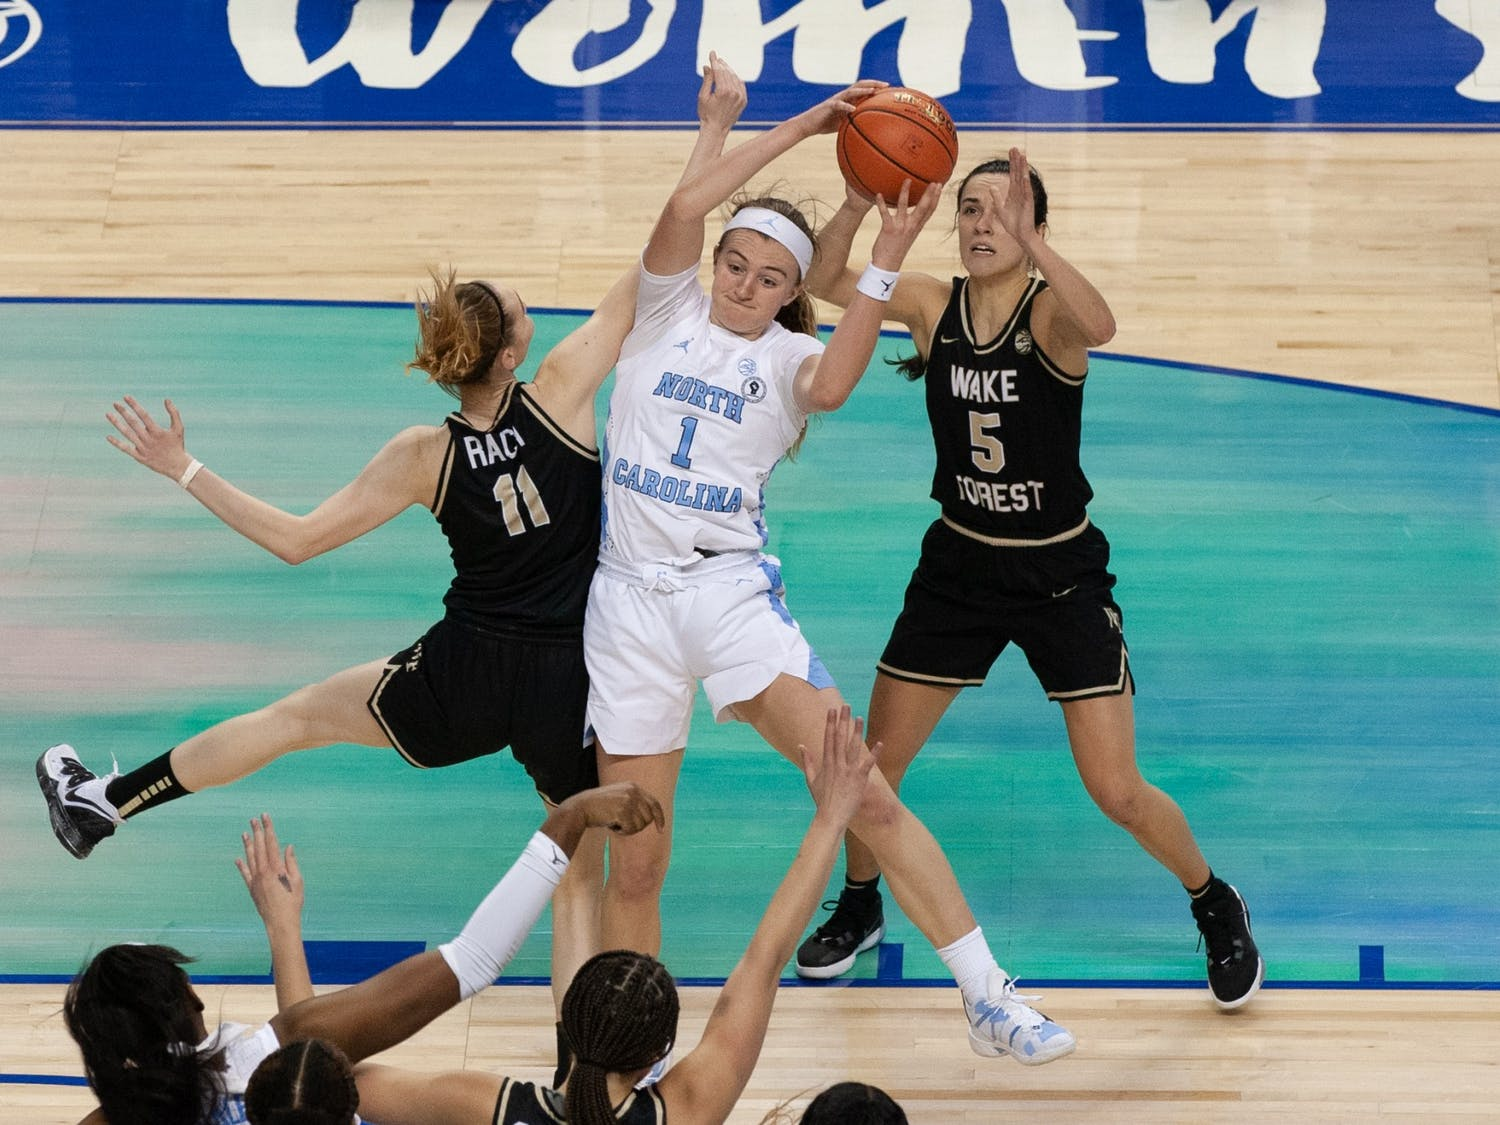 UNC first year forward Alyssa Utsby pulls down a rebound in Carolina's second-round game against Wake Forest University at Greensboro Coliseum on Mar. 4, 2021.